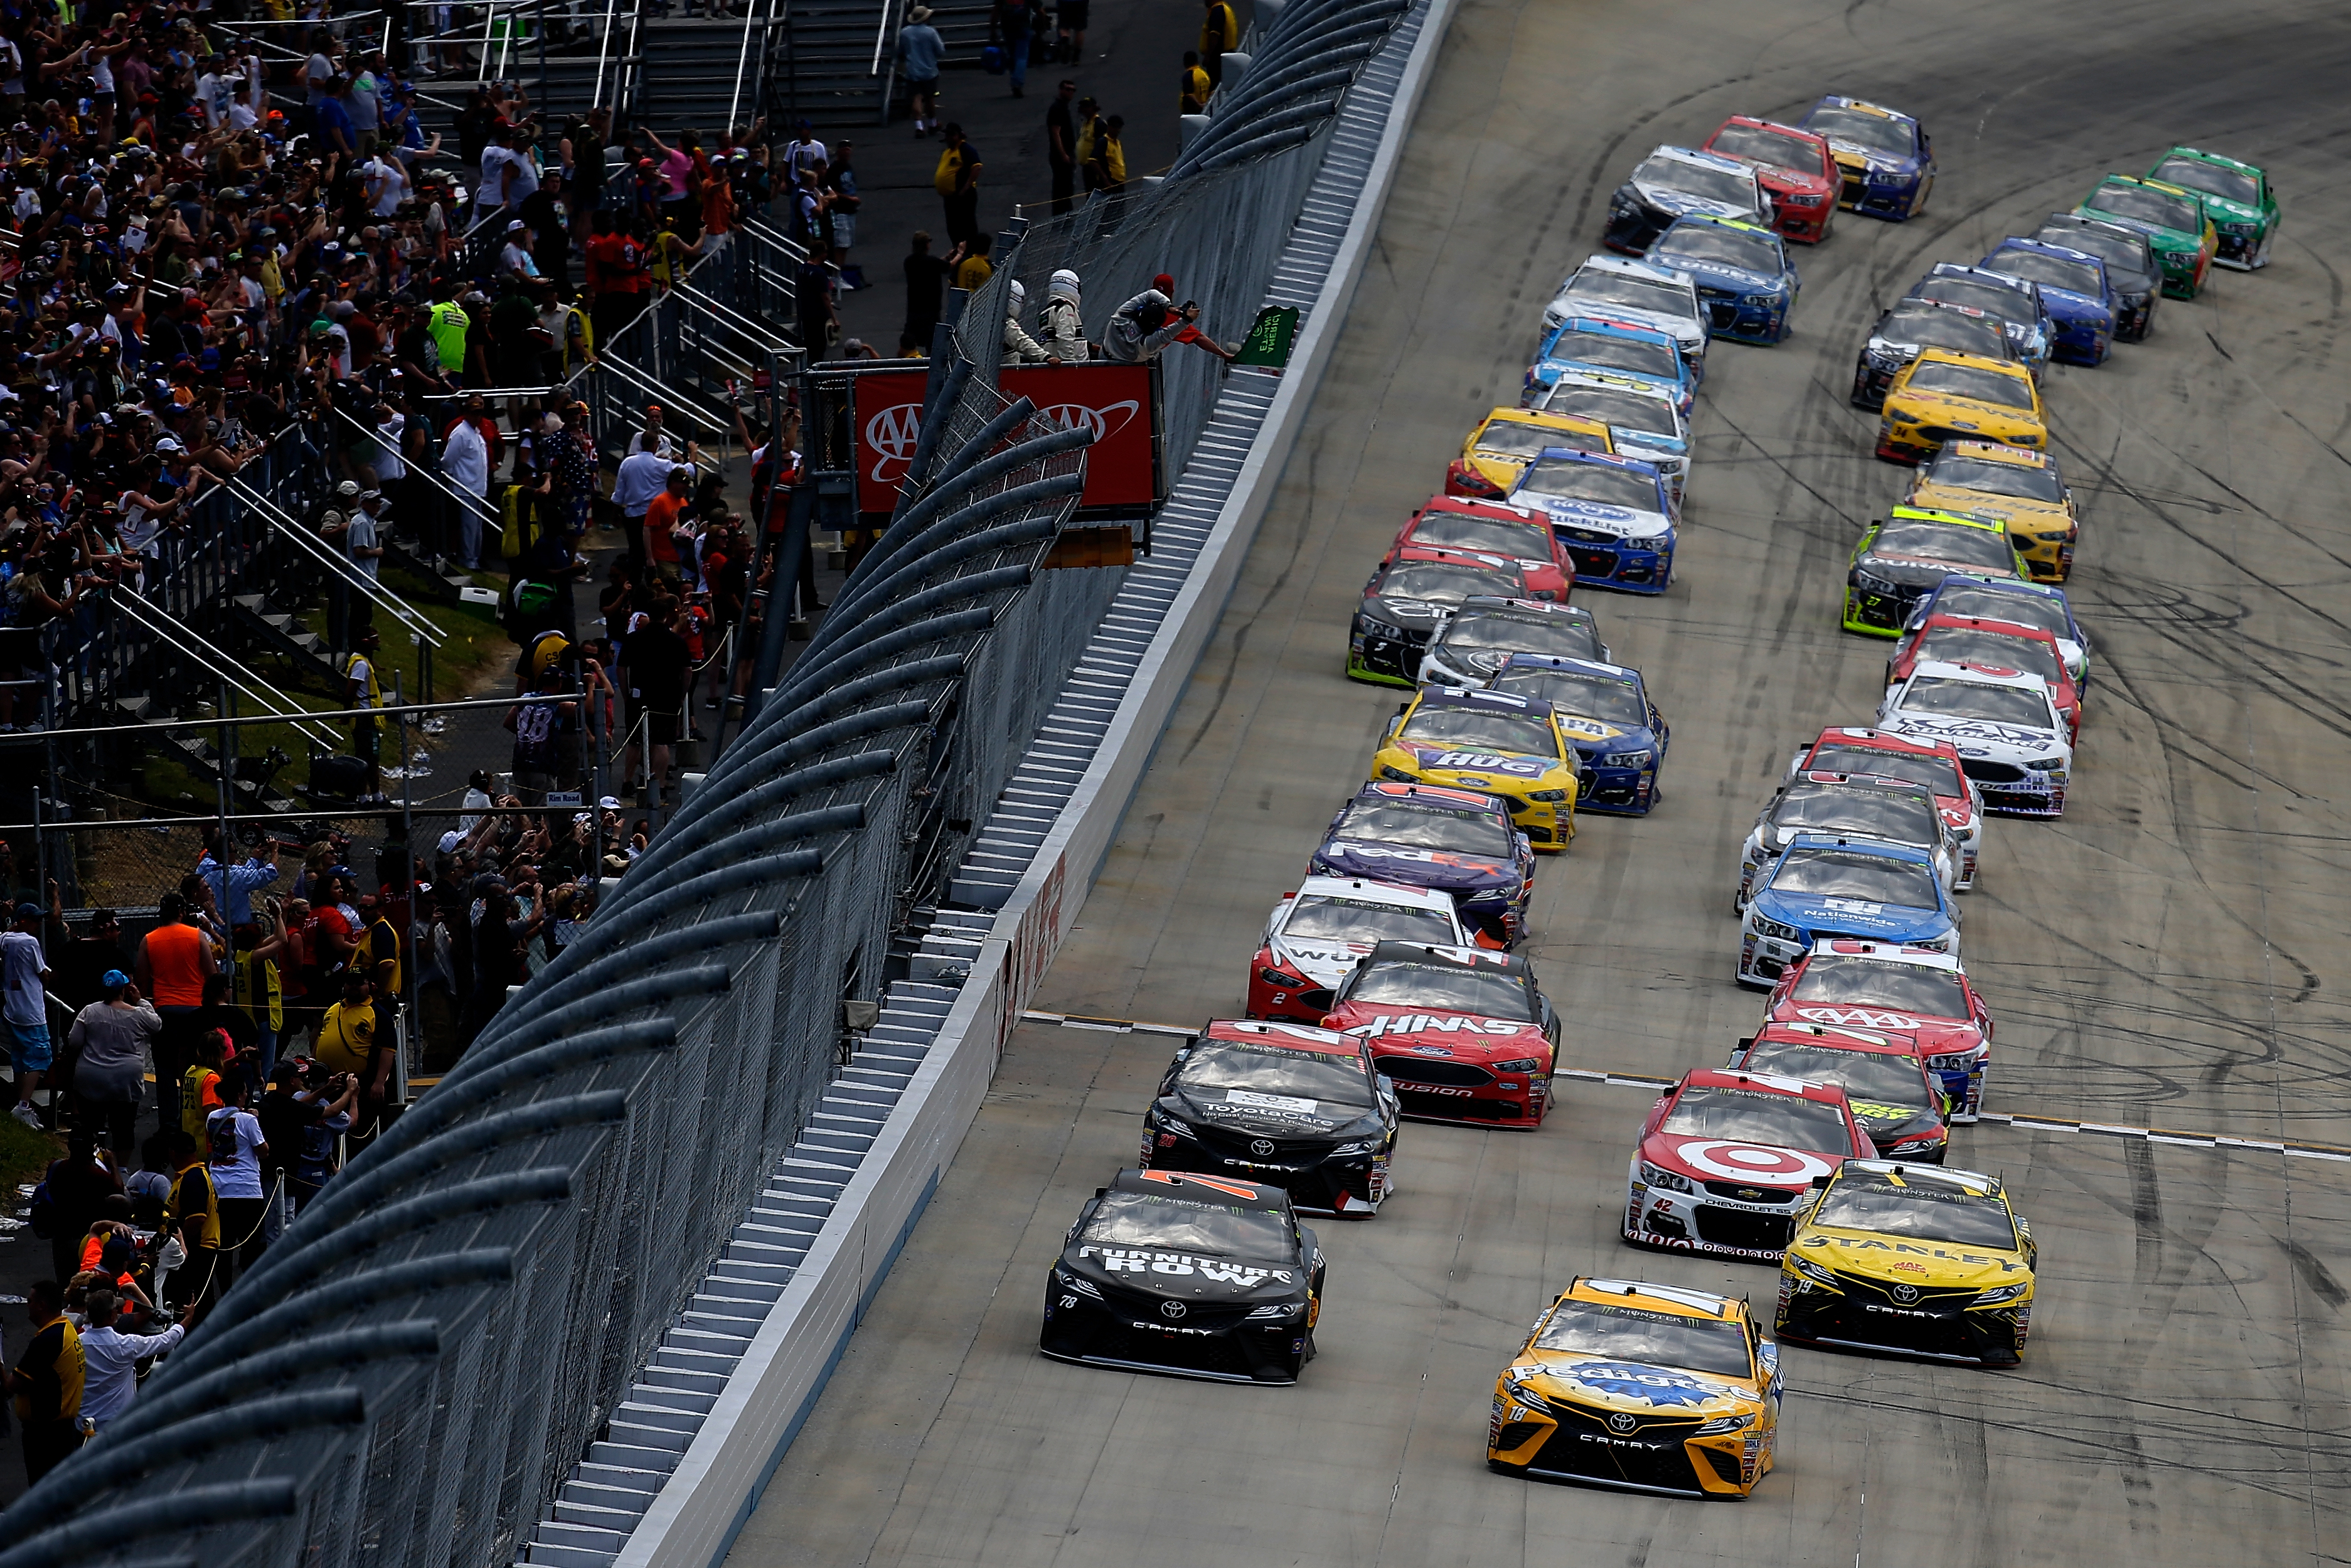 Dover International Speedway results from the Monster Energy NASCAR Cup Series on June 4, 2017